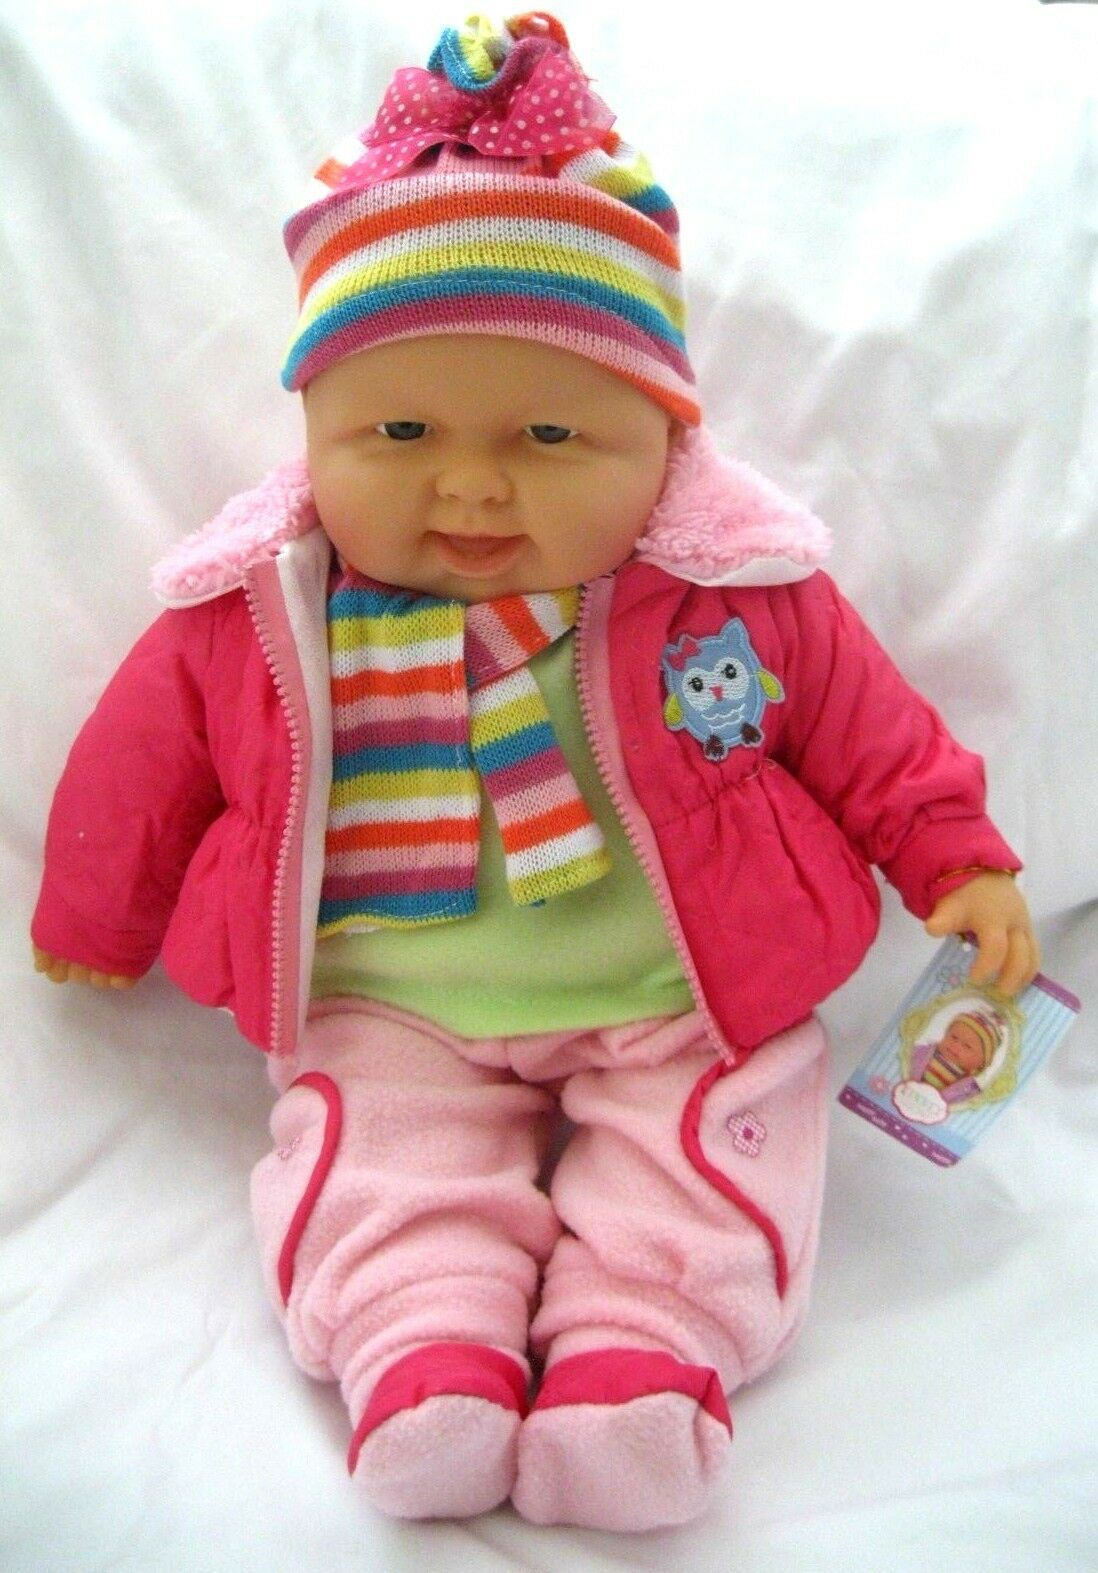 Kinnex 20  Limited Edition with Sound Sound Sound Baby Doll in Pink Outfit,Beanie,Scarf-New  cdd6af